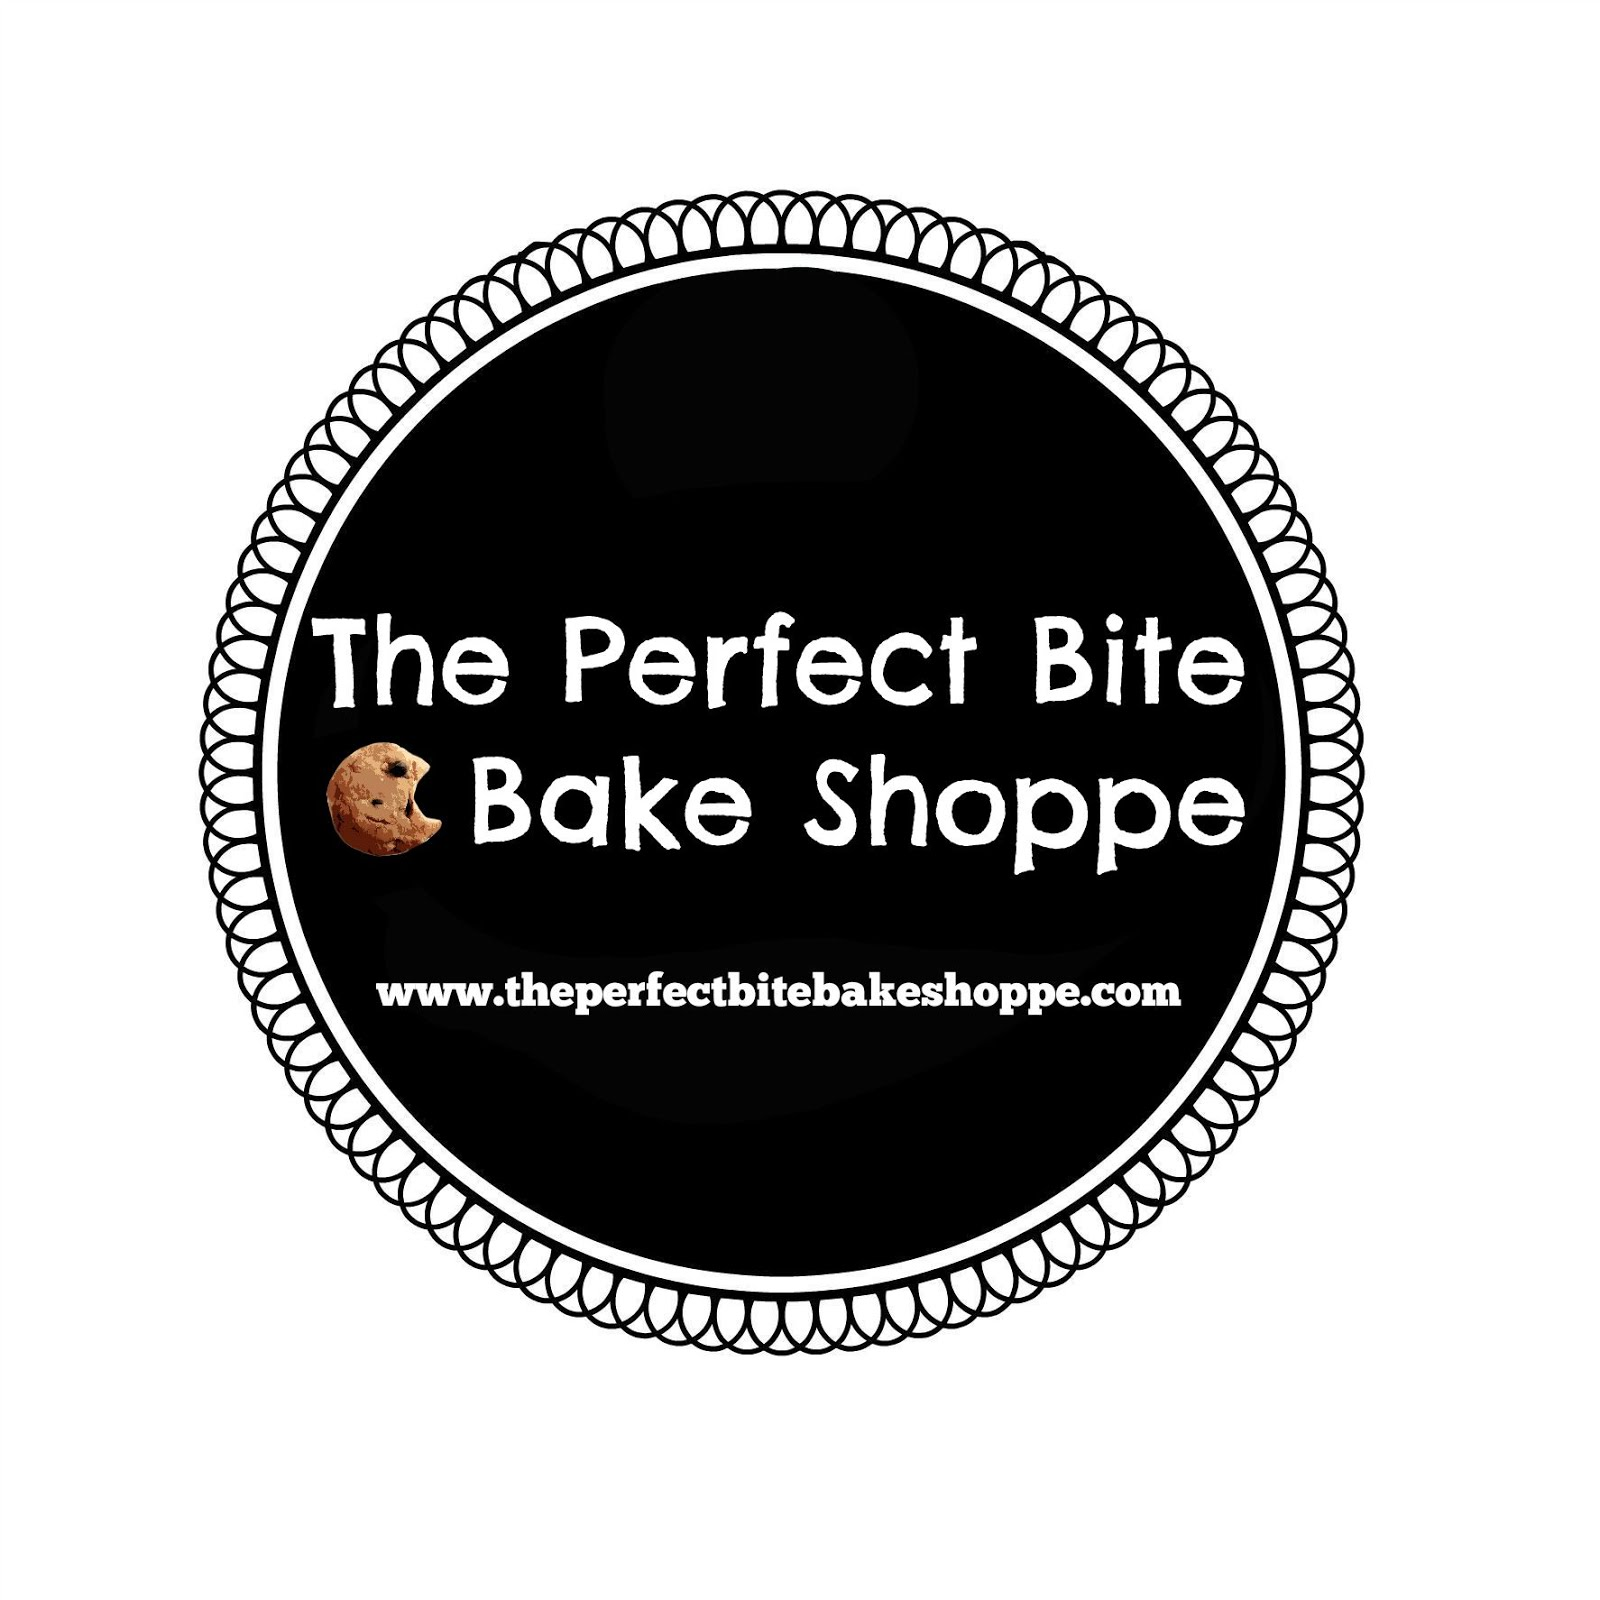 The Perfect Bite Bake Shoppe